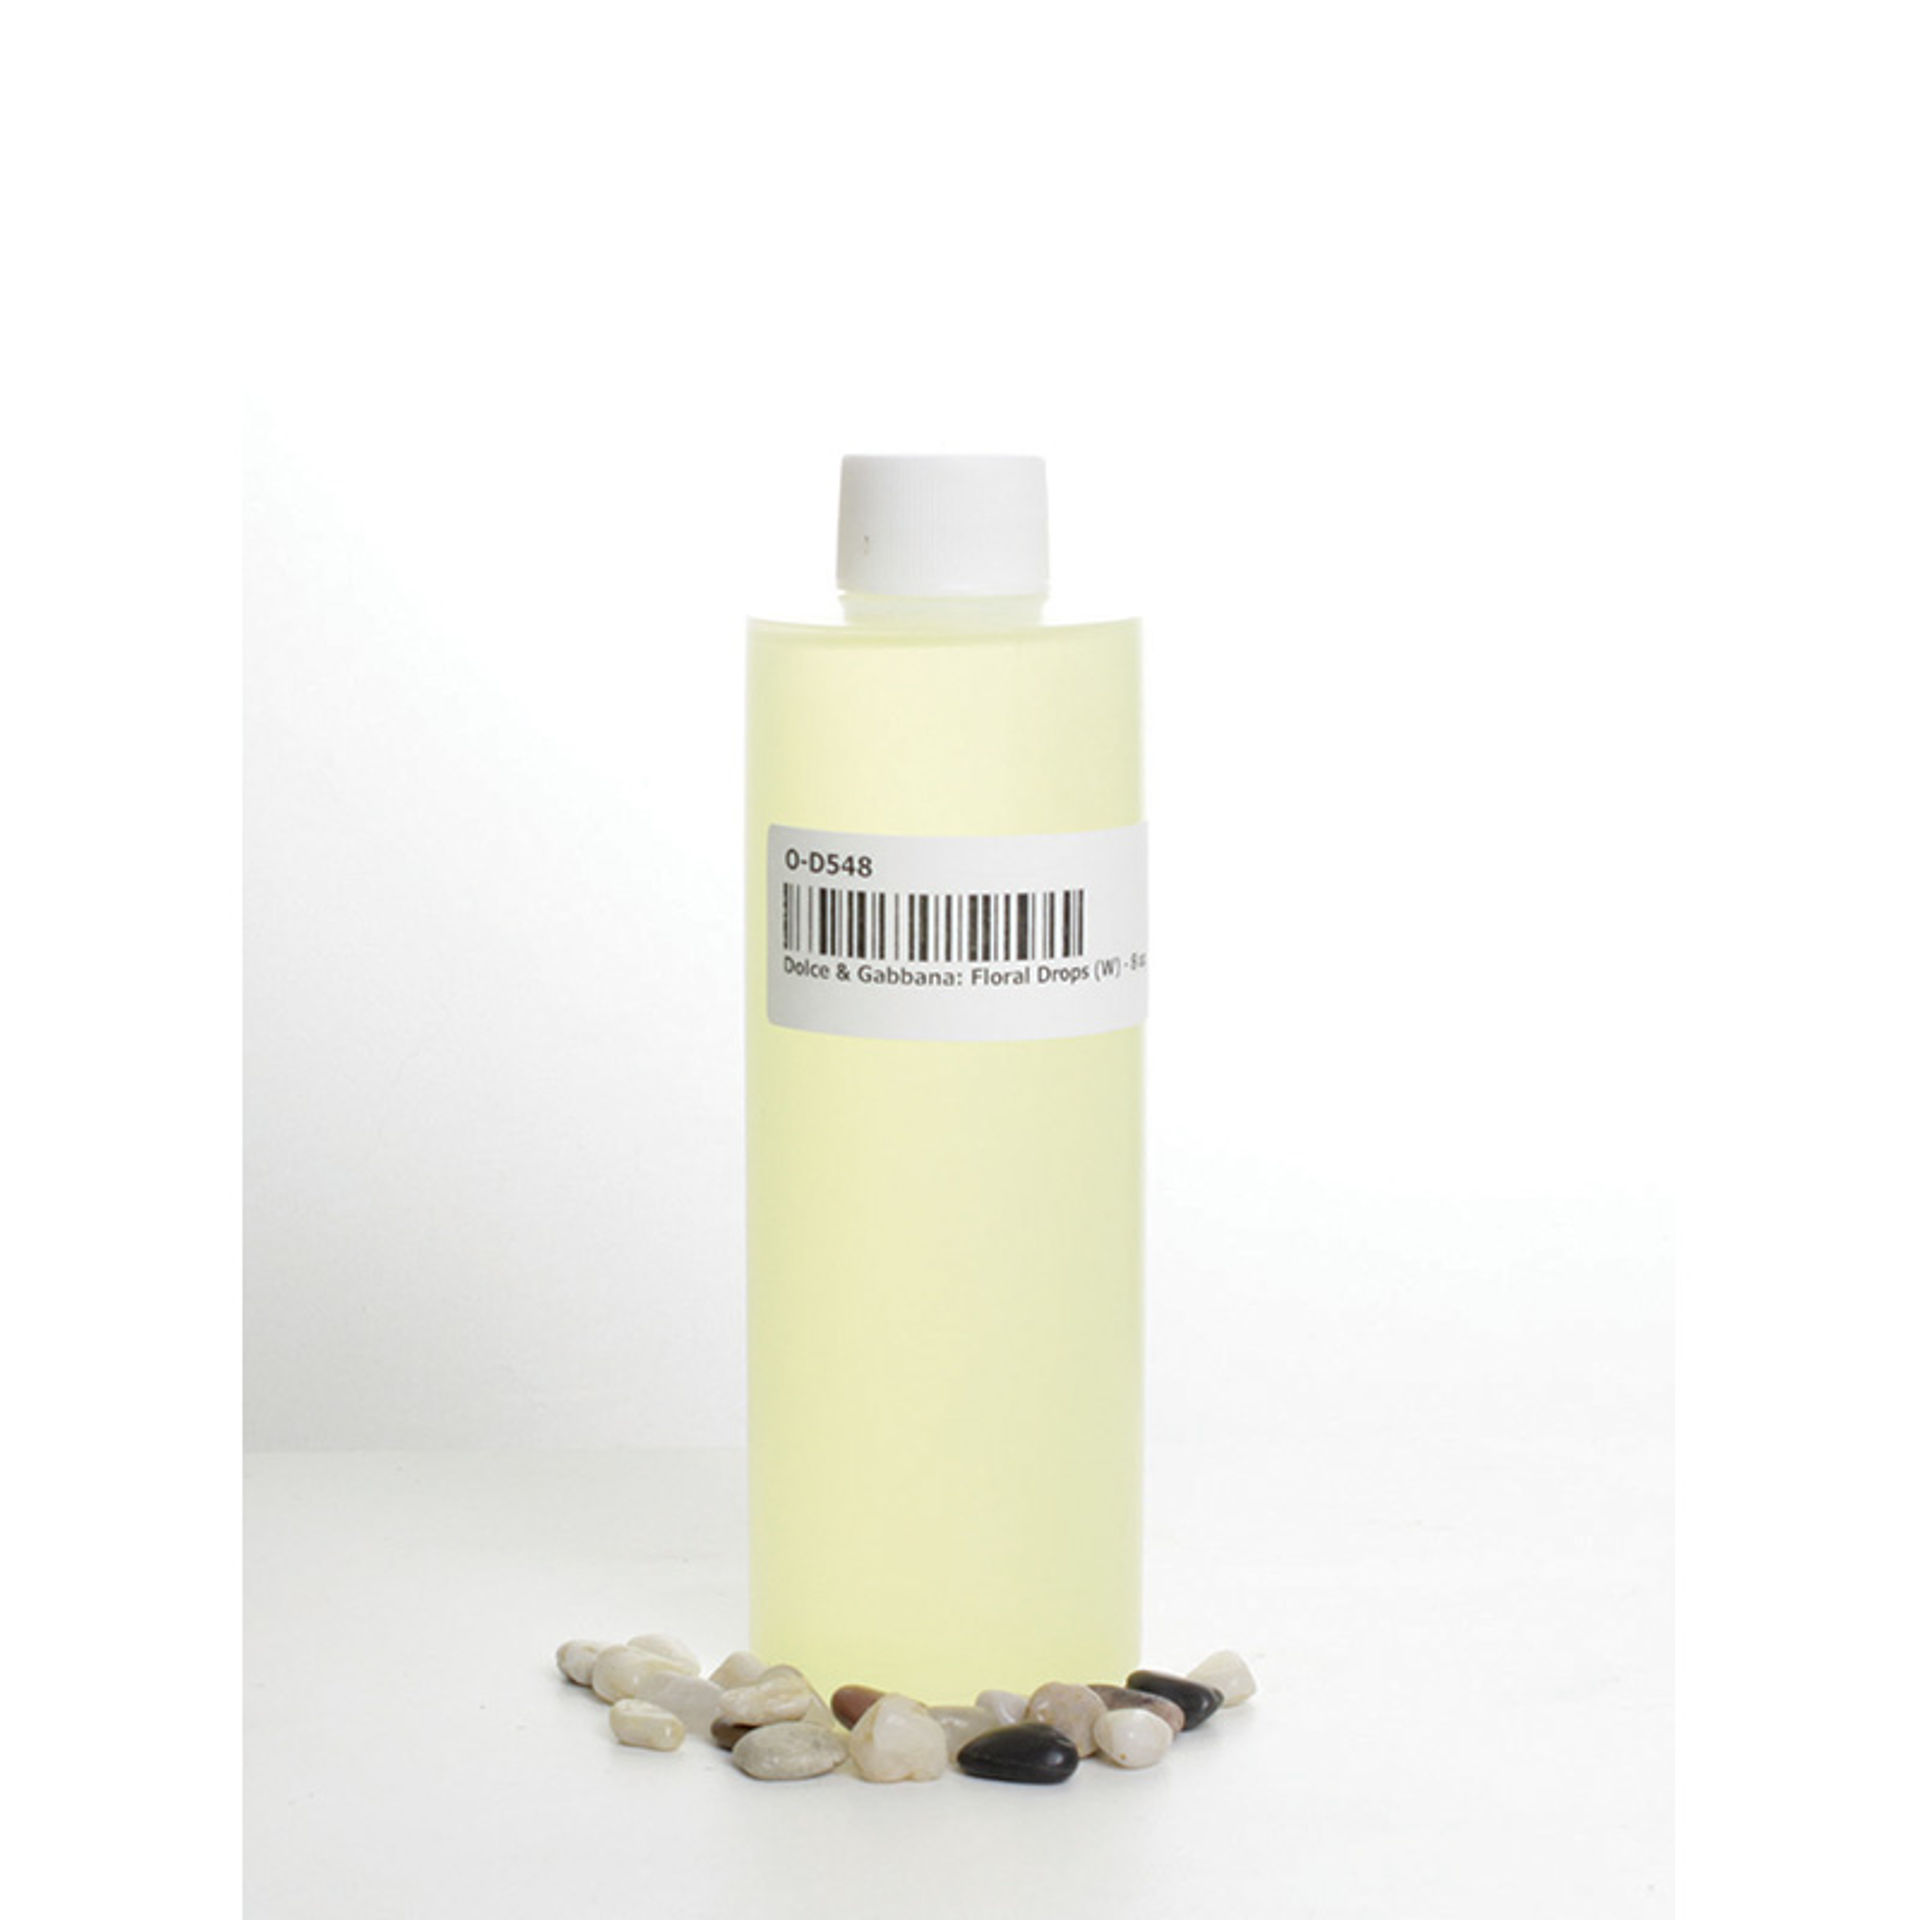 Picture of Dolce & Gabbana: Floral Drops (W) - 8 oz